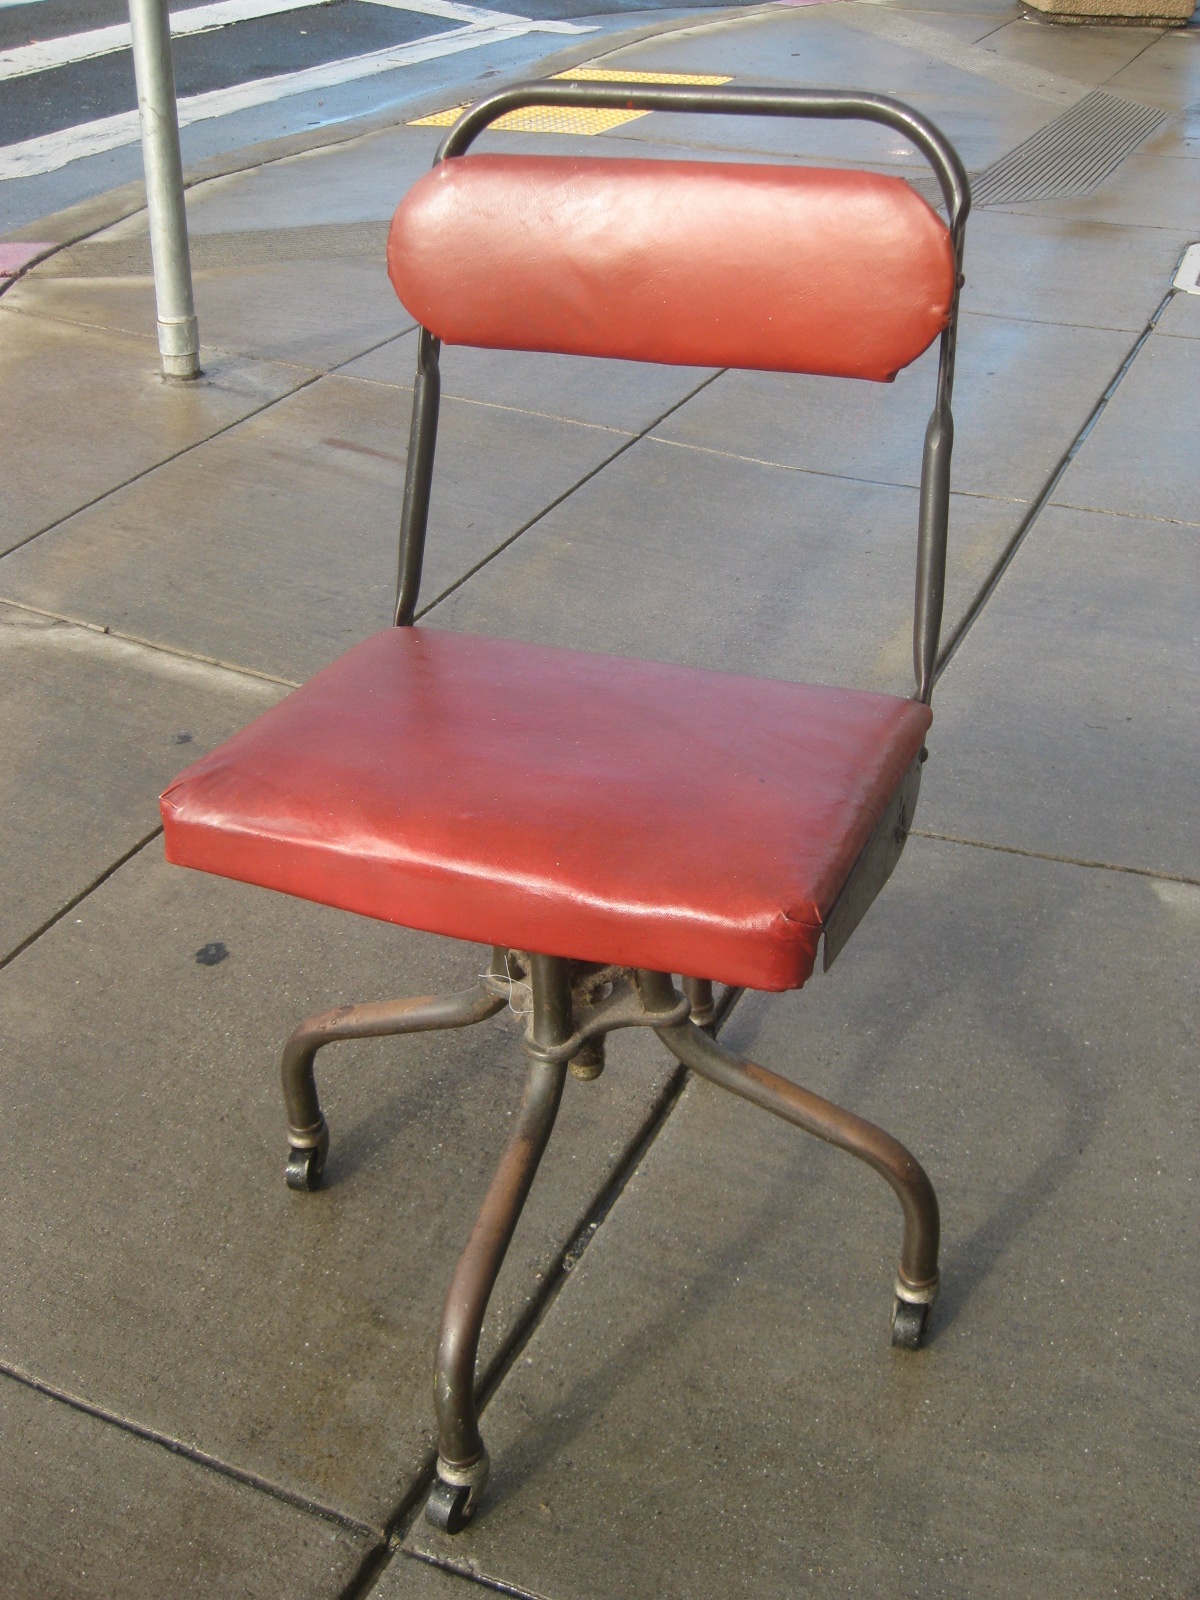 Desk Chairs Retro with red leather seat and iron legs by eurway furniture for home furniture ideas